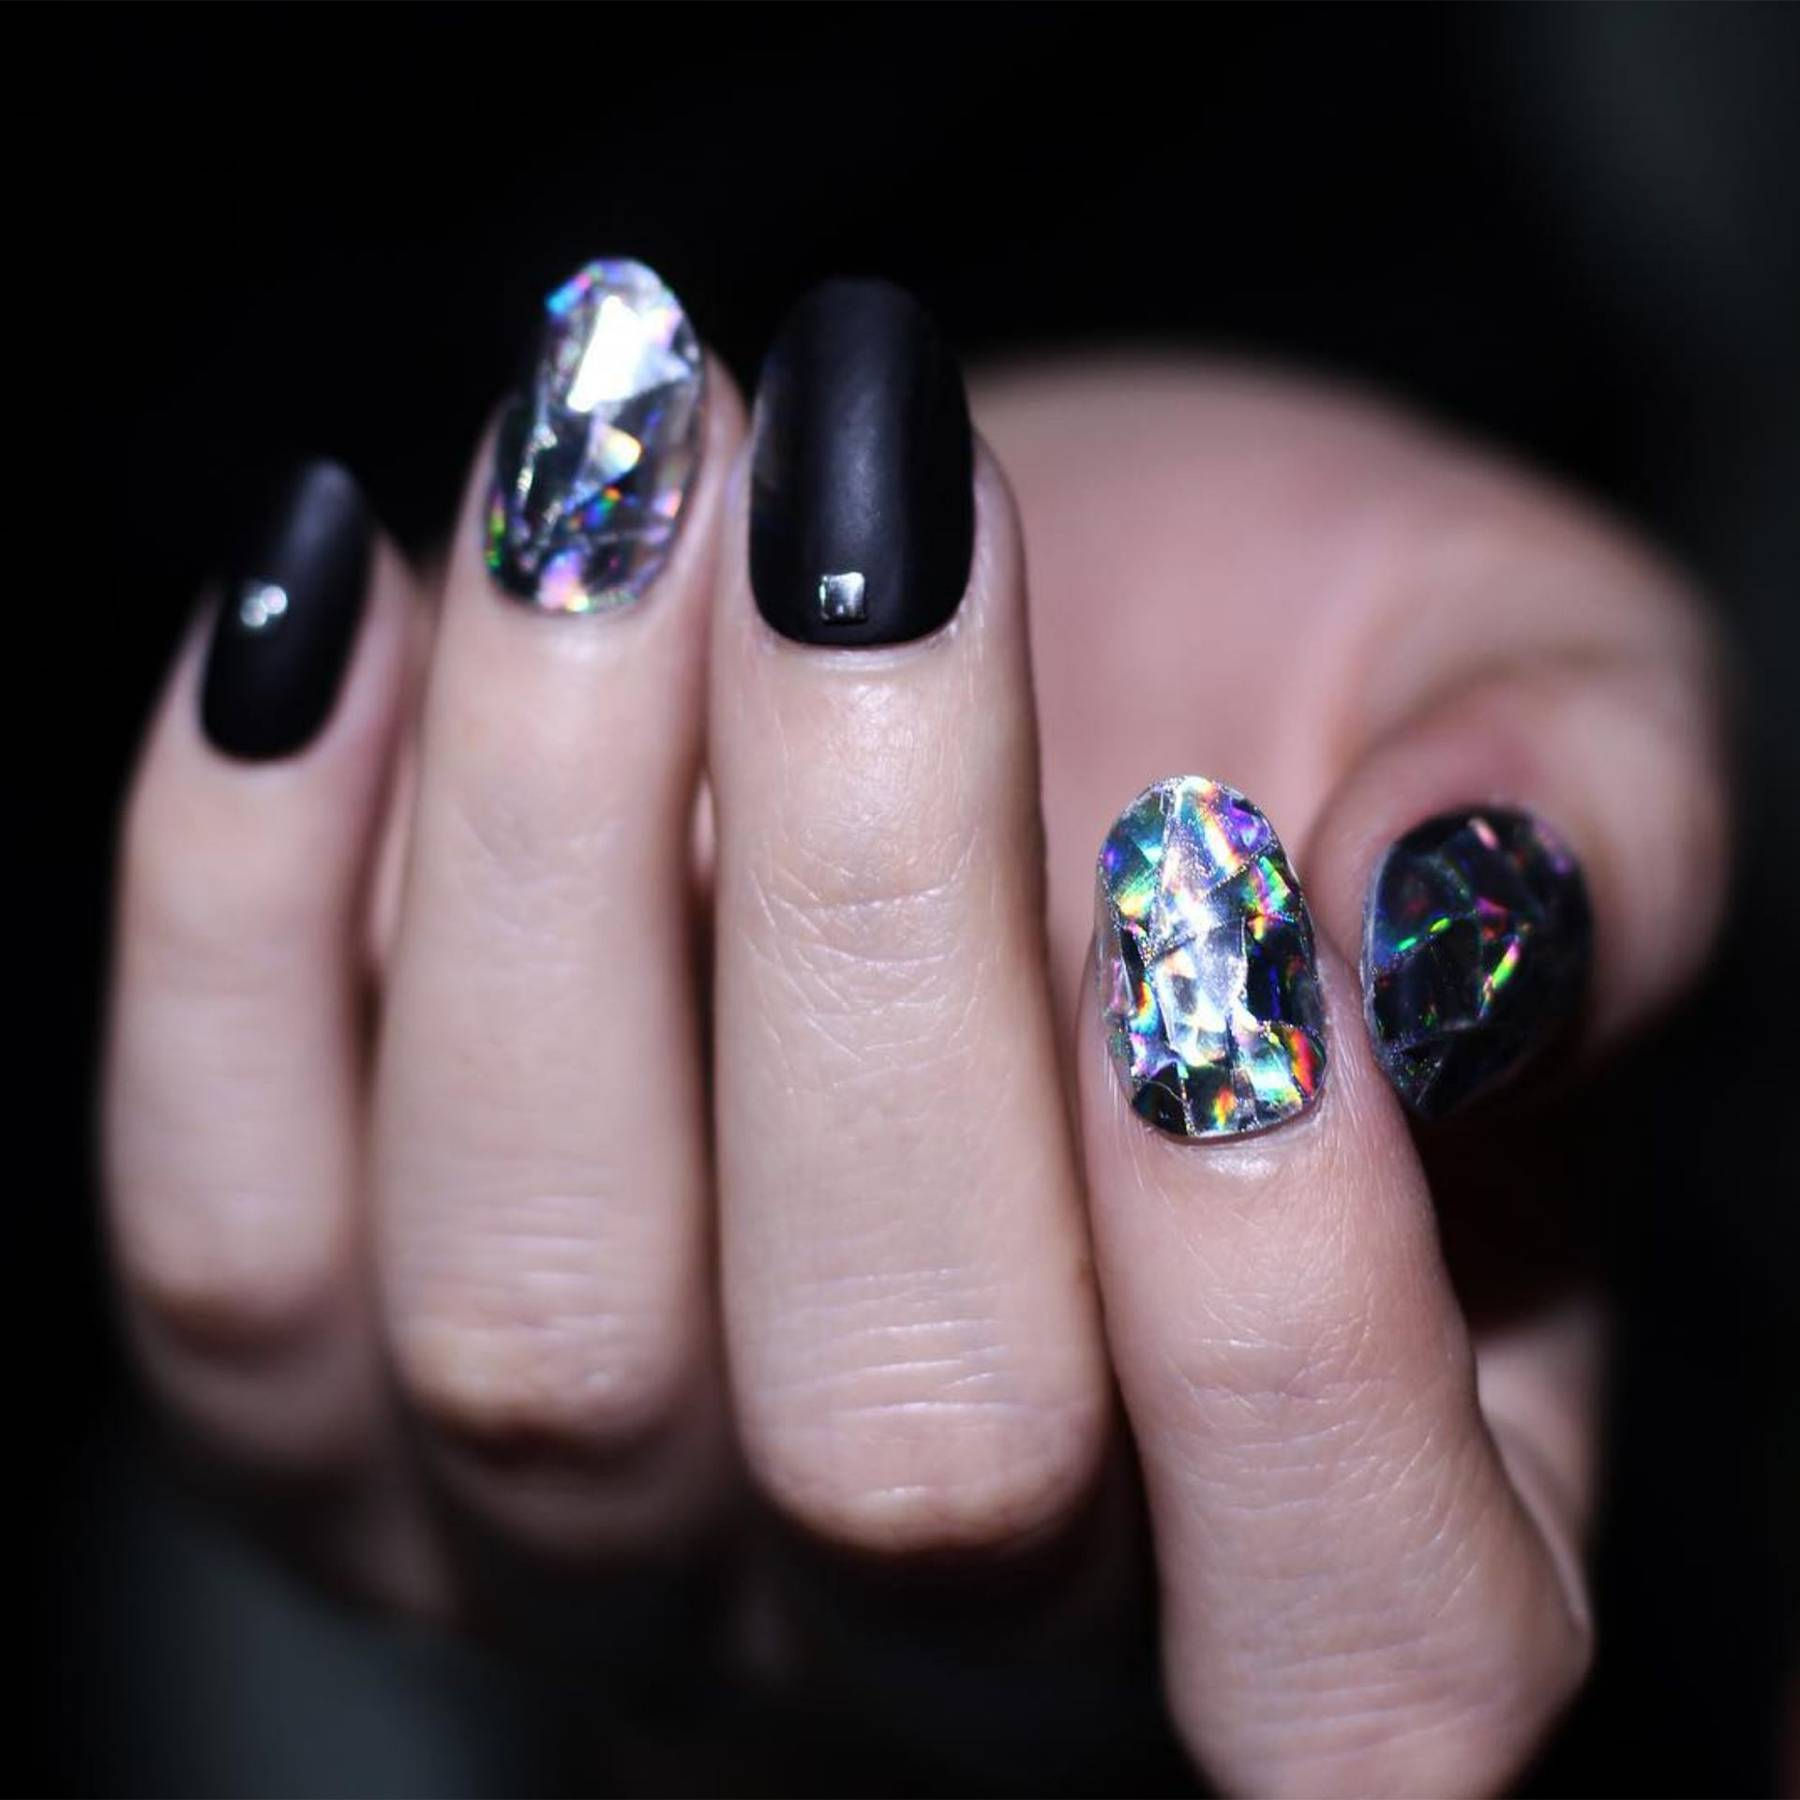 Korean nail art nail designs pictures from instagram glamour uk prinsesfo Choice Image